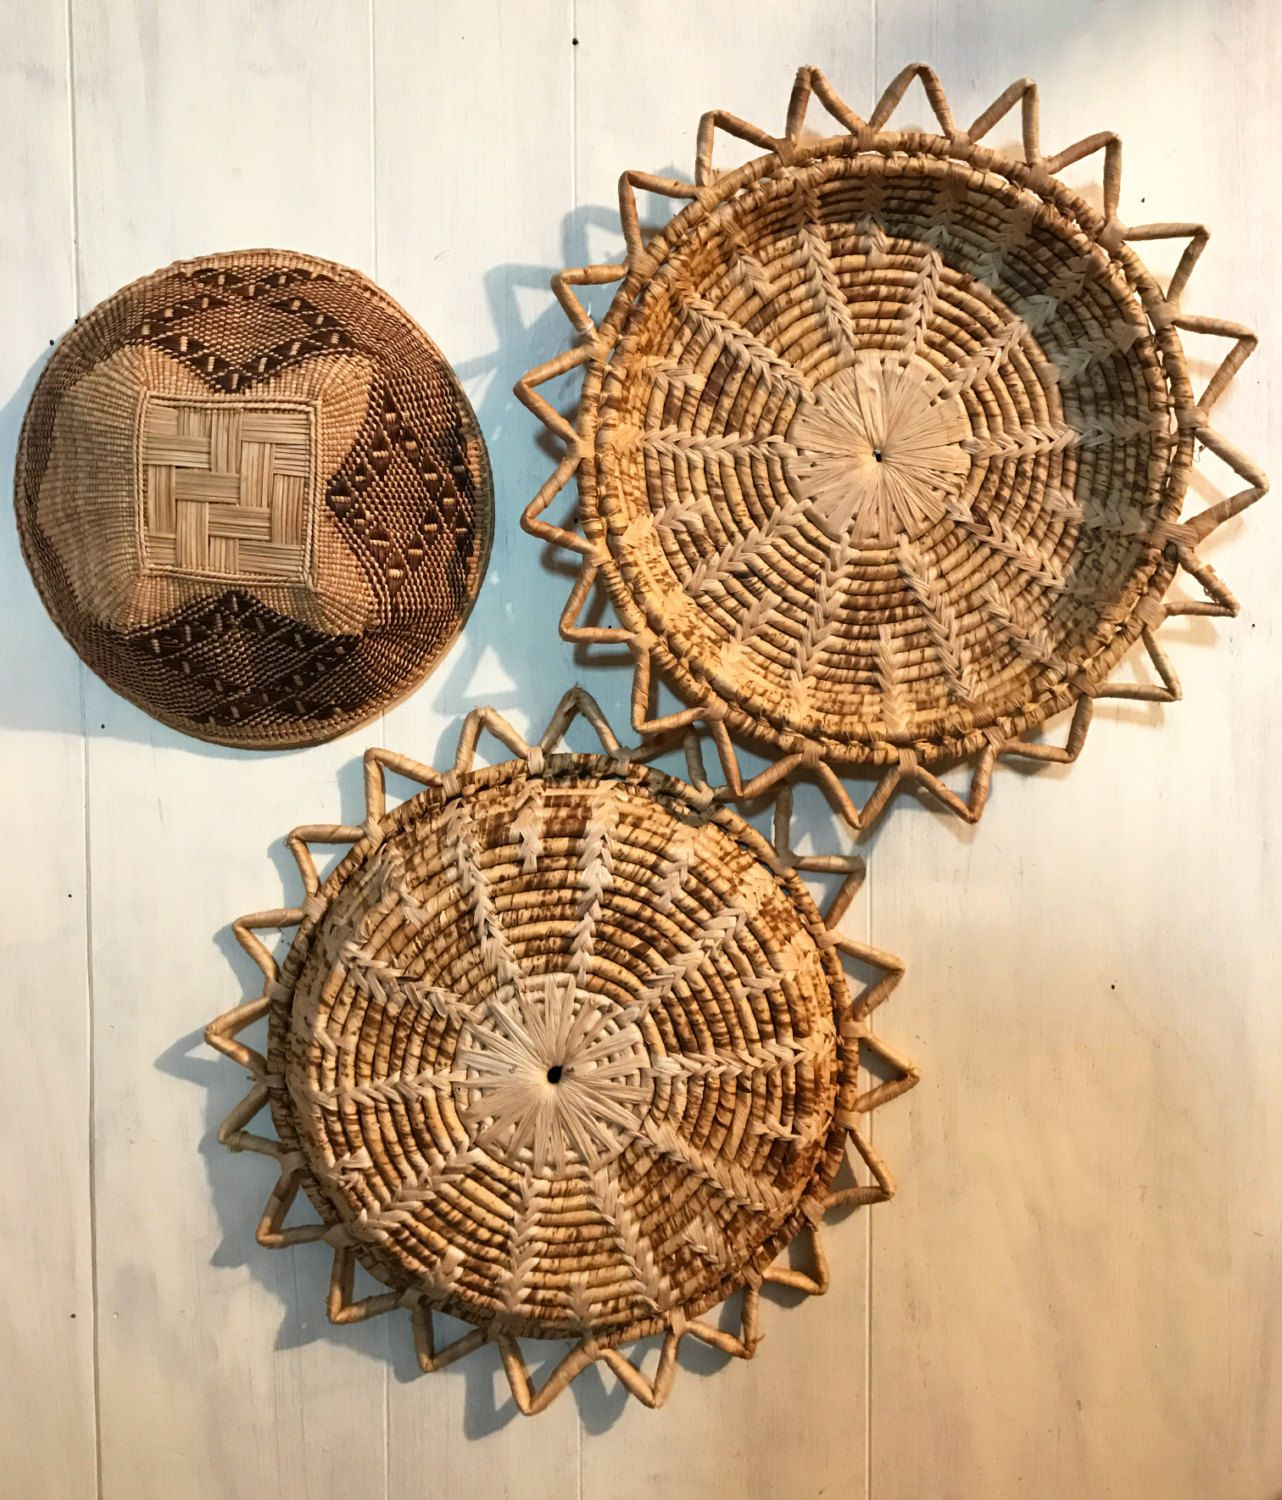 Wall Baskets Decor woven straw wall baskets - rattan basket trays - starburst basket